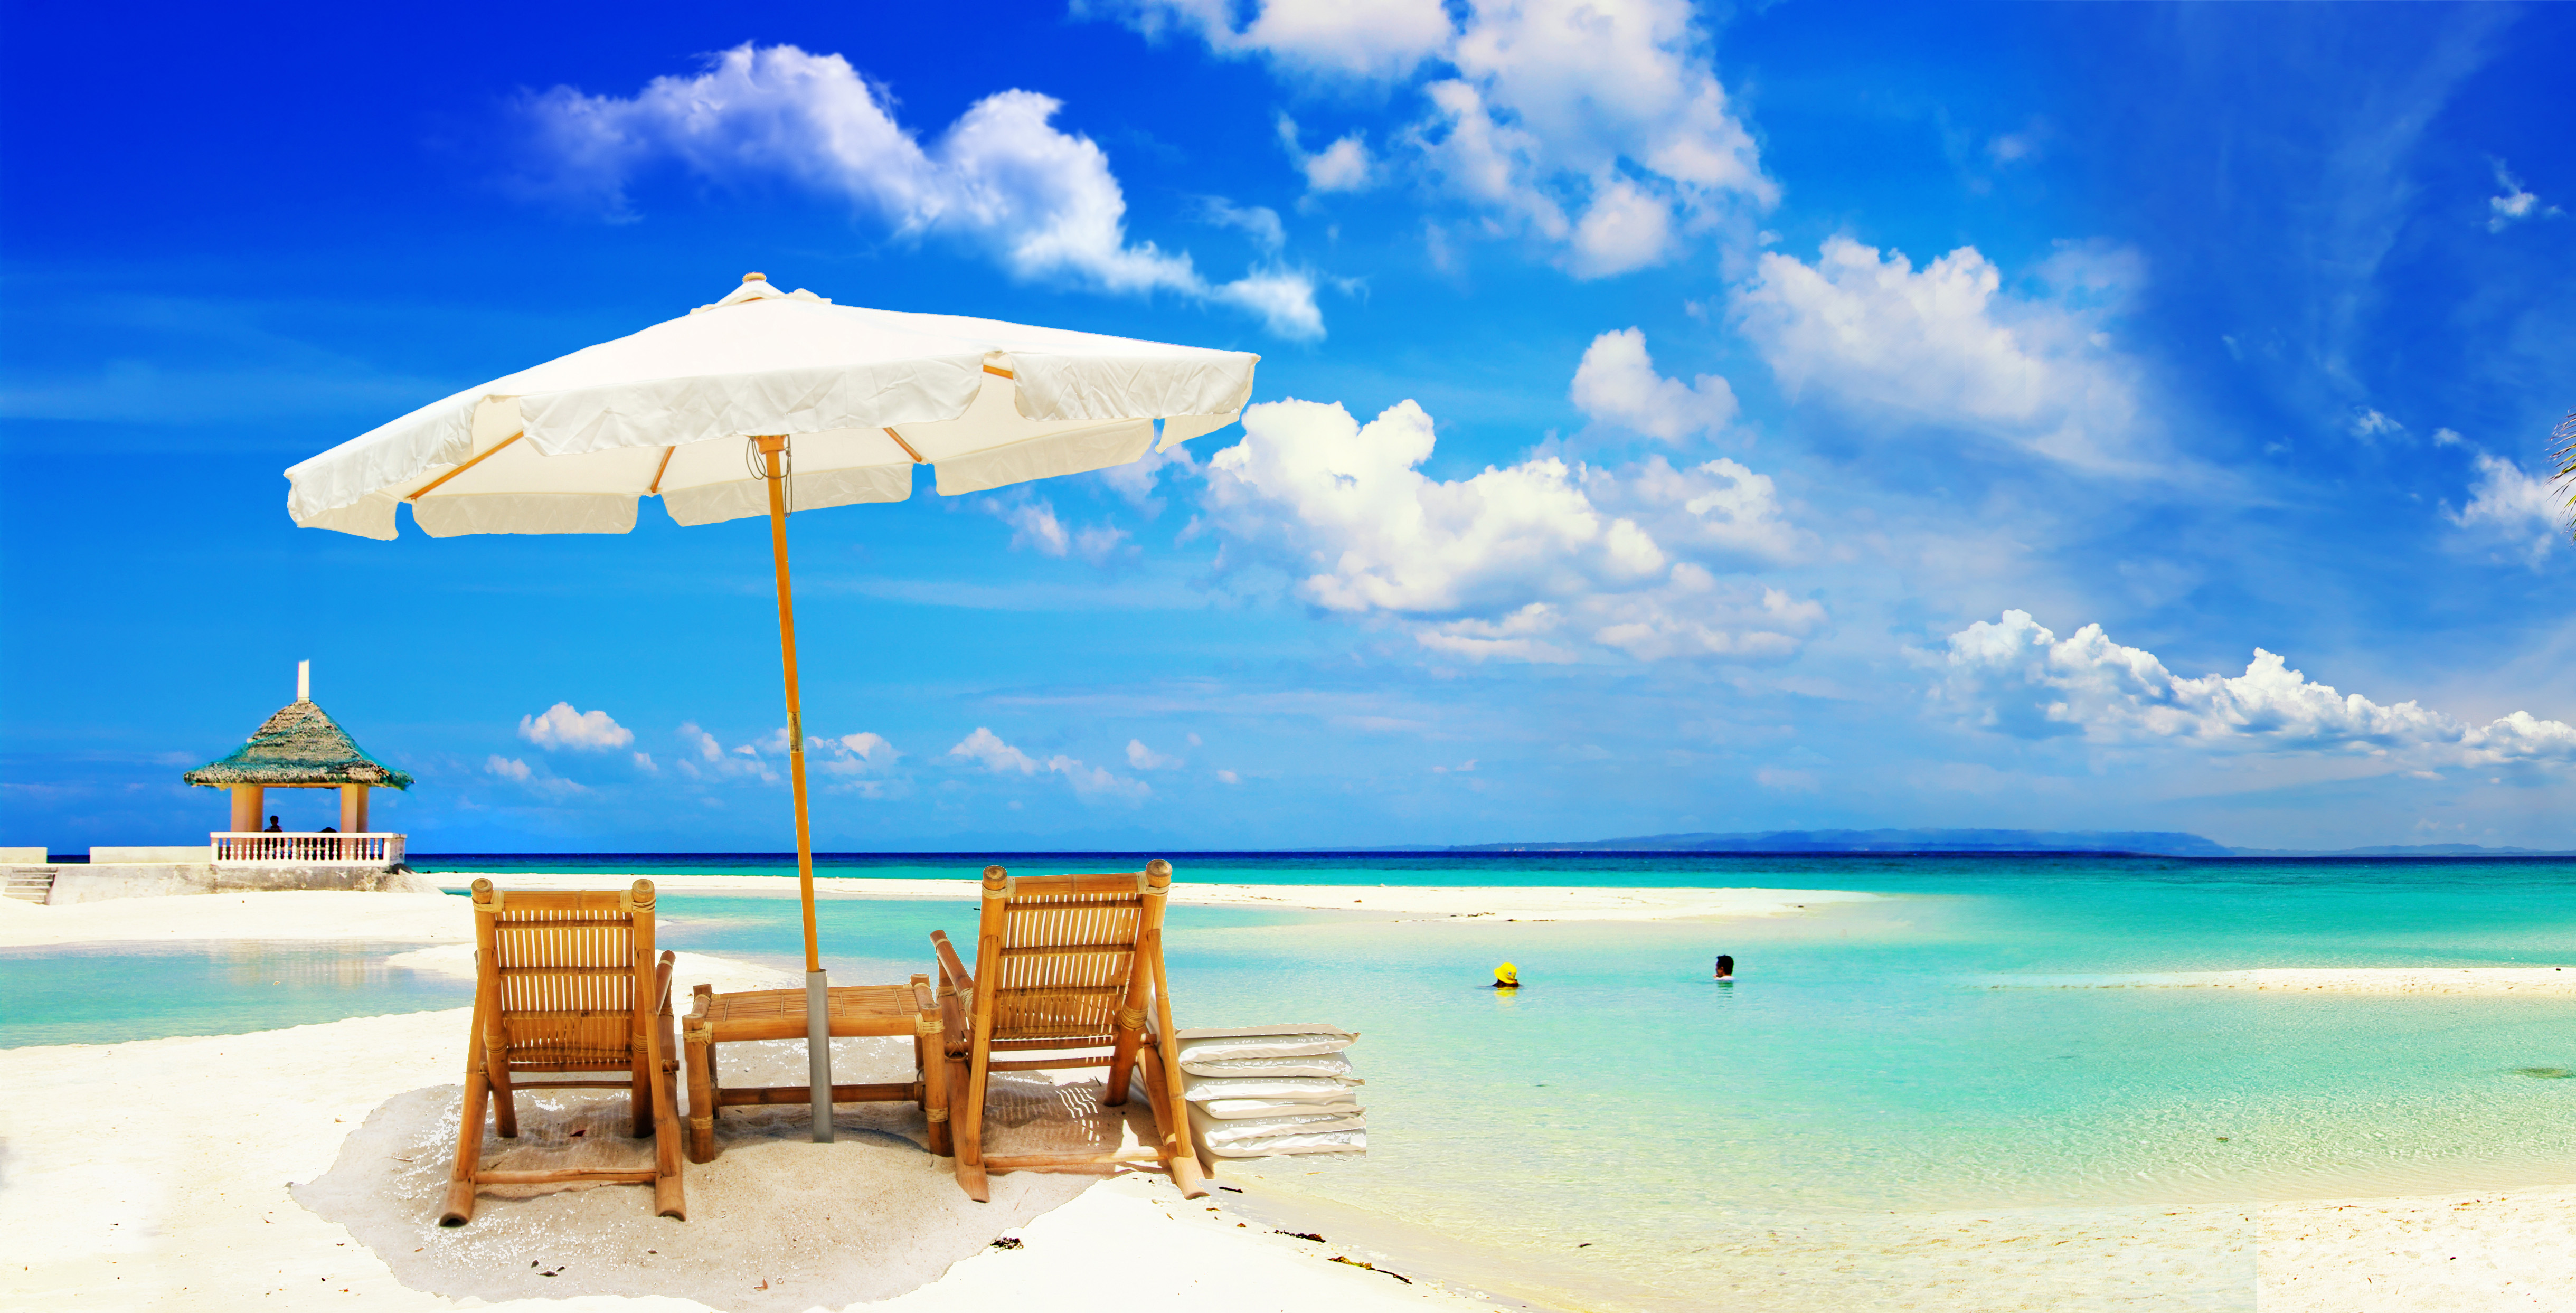 Beach Holiday Wallpapers High Quality Download Free